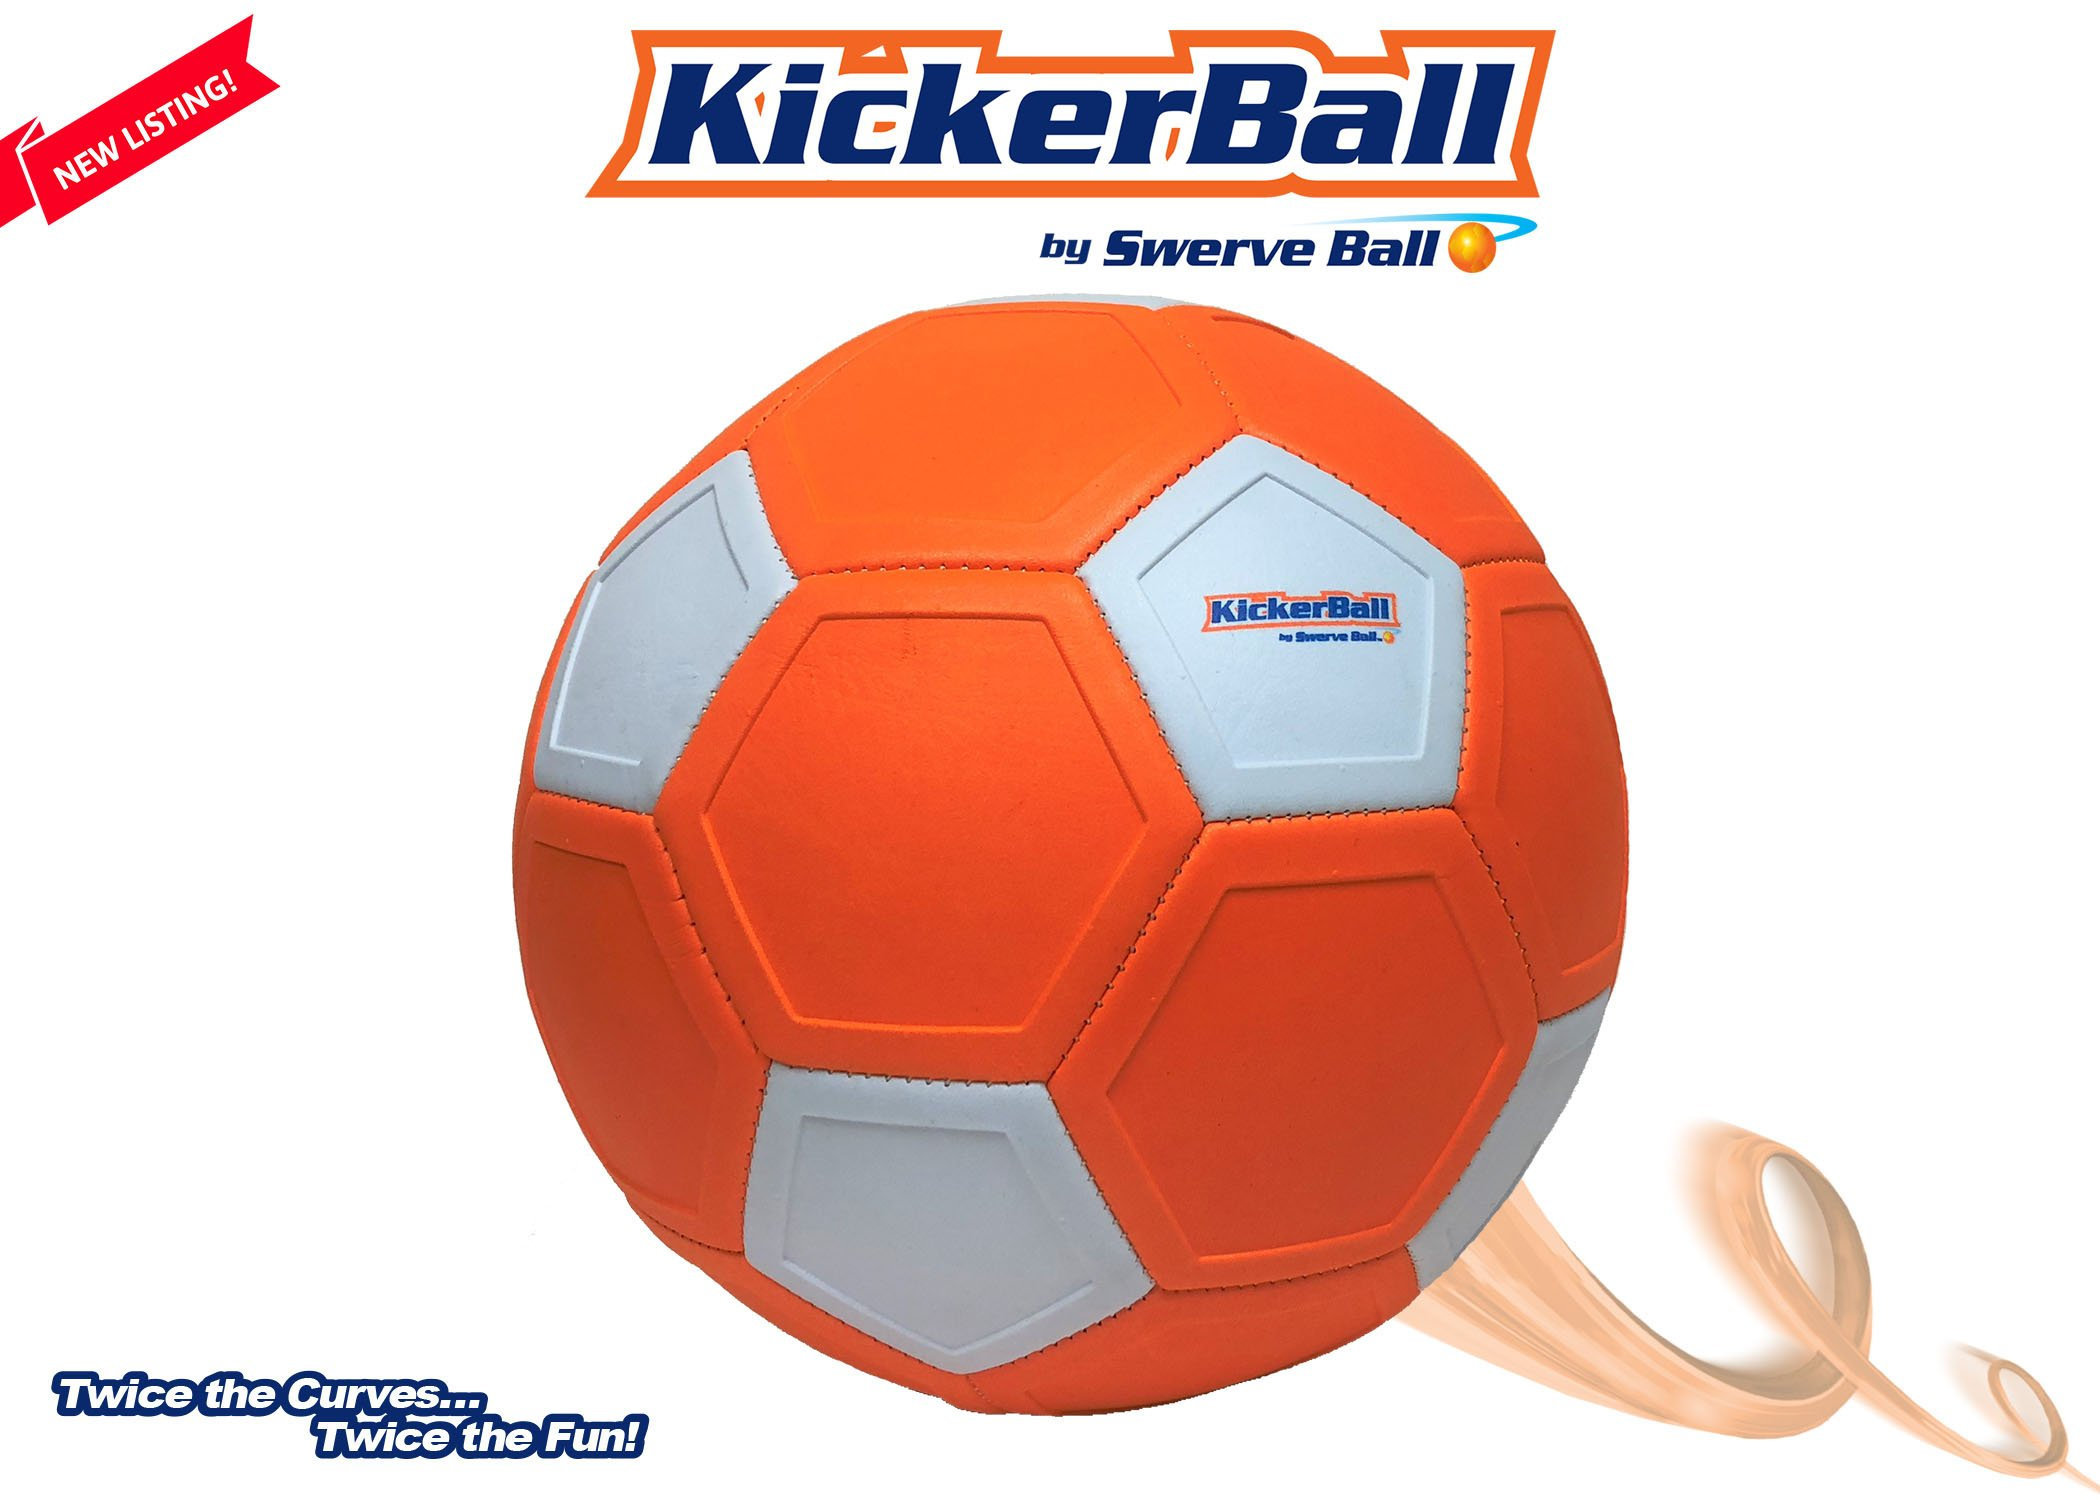 Kickerball - Curve & Swerve Soccer Ball with Pump by Kickerball